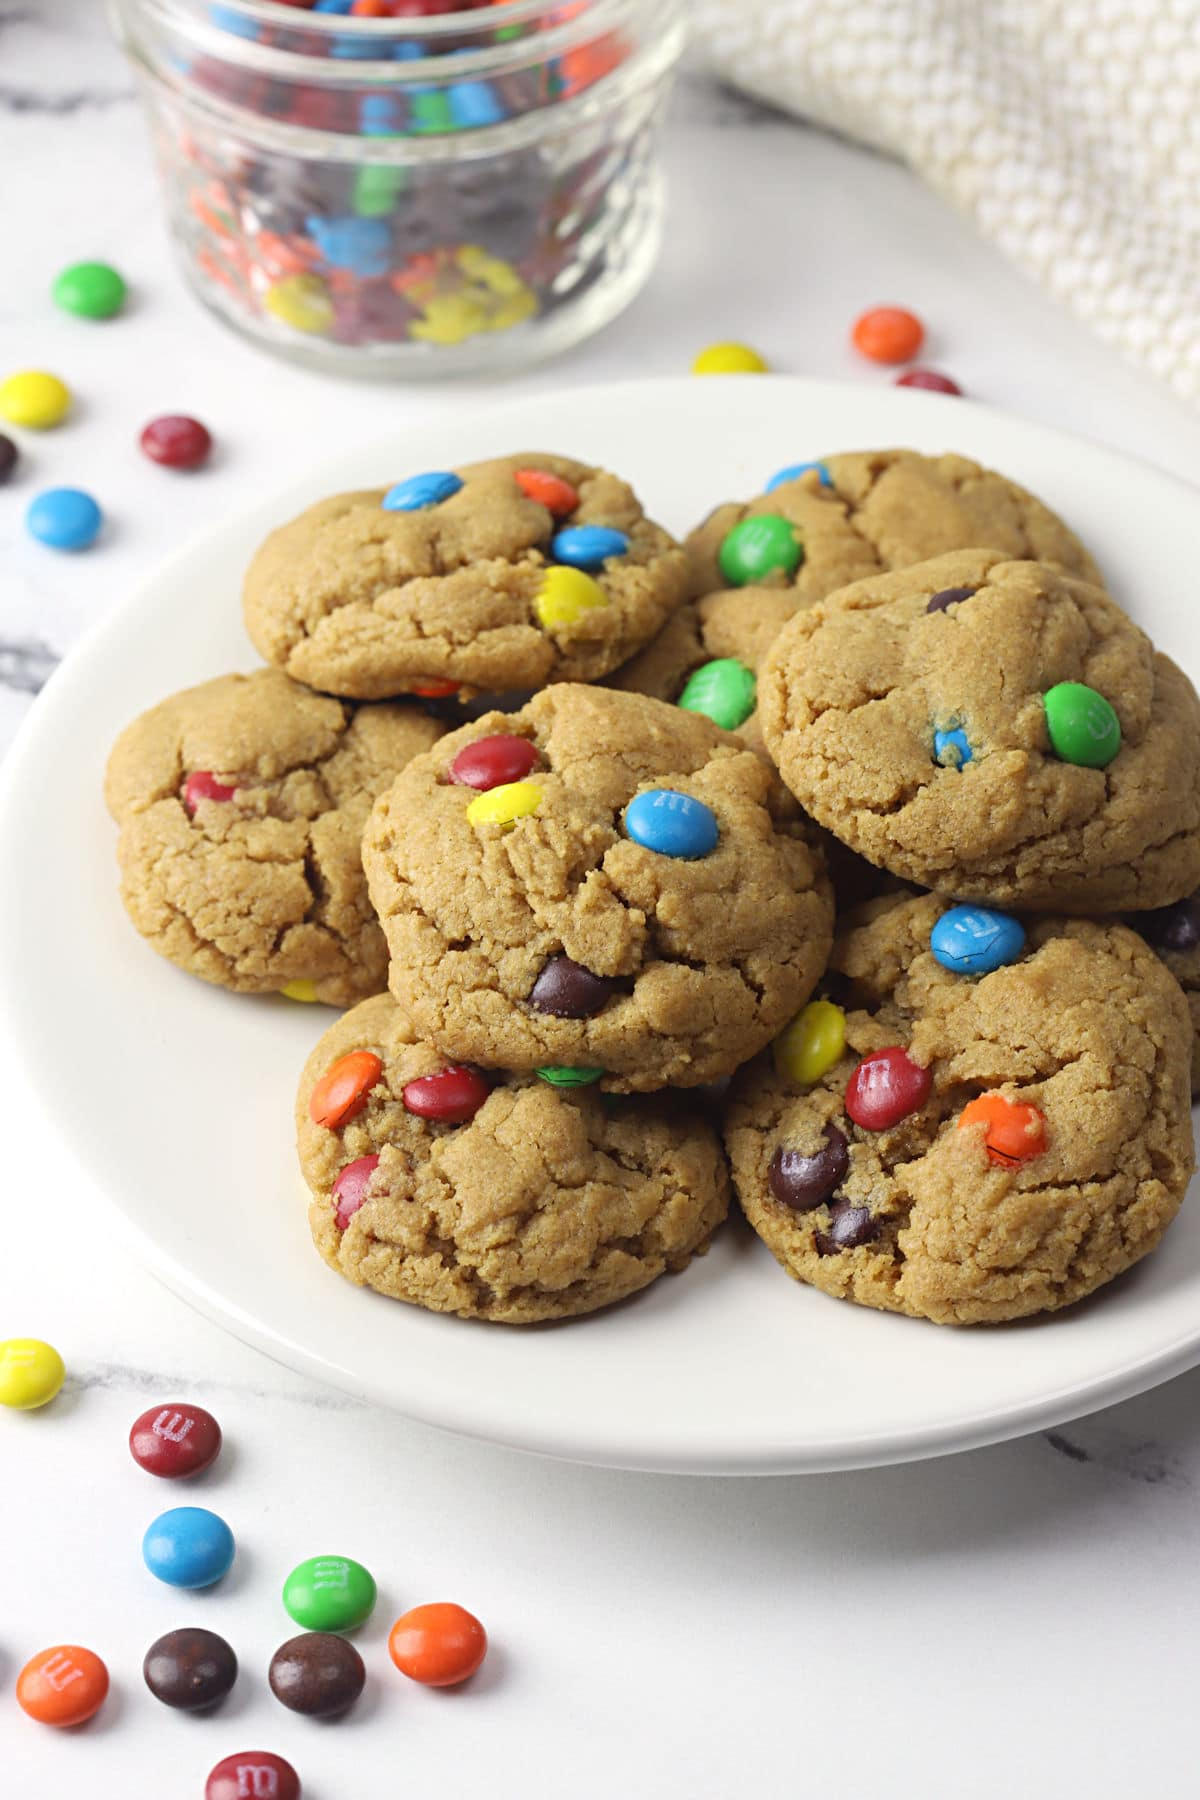 A white plate filled with small peanut butter cookies filled with colorful candies.